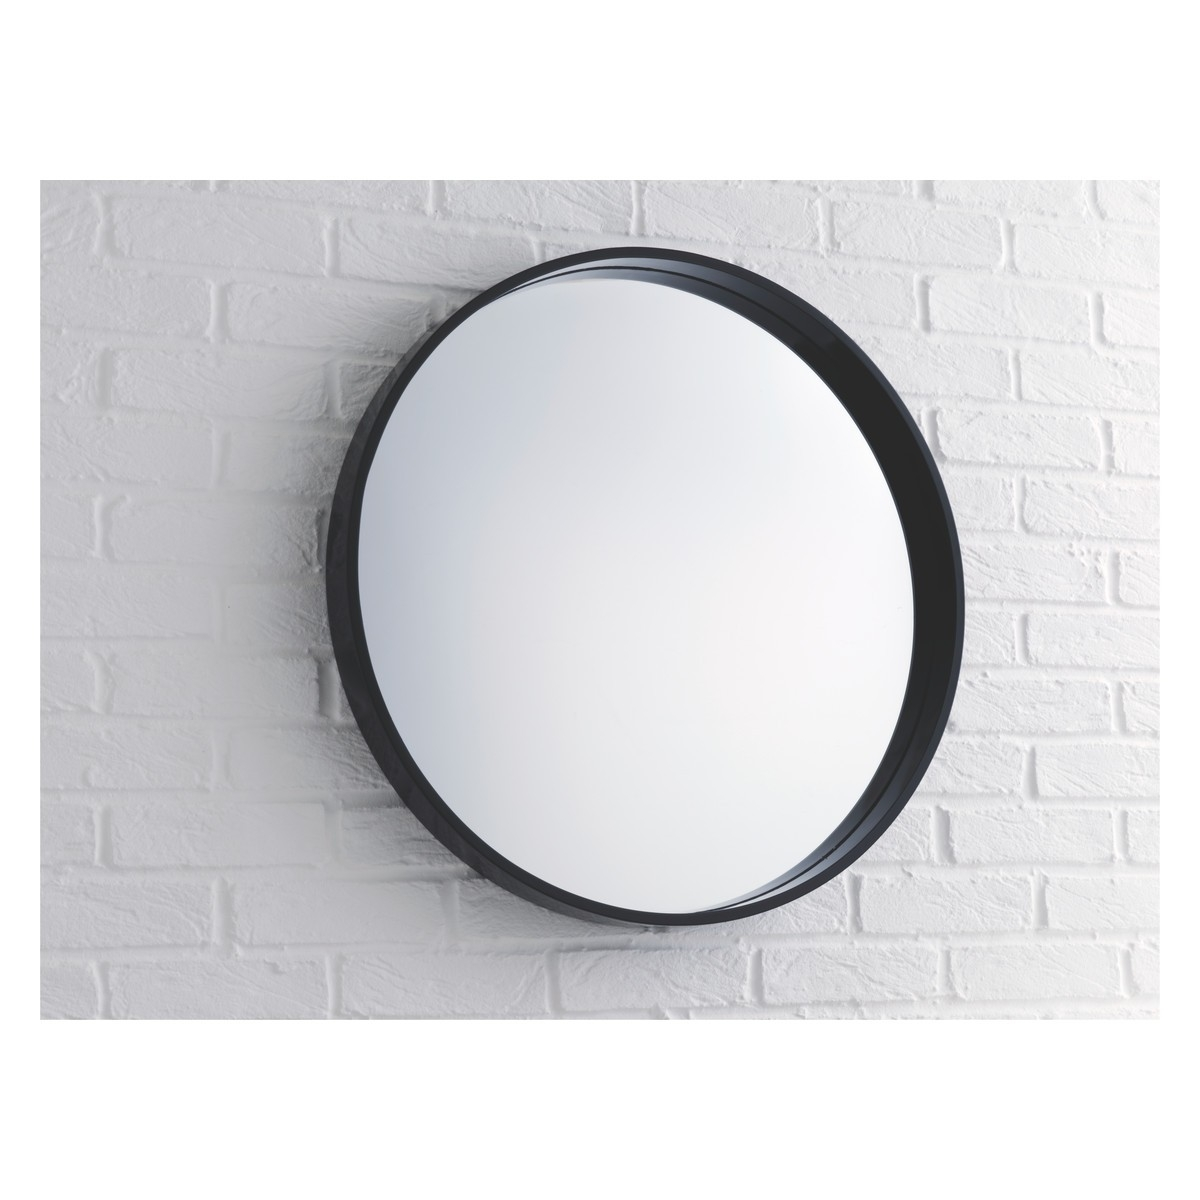 Aimee Black Round Wall Mirror D65cm Buy Now At Habitat Uk Throughout Mirror Circles For Walls (Image 2 of 15)